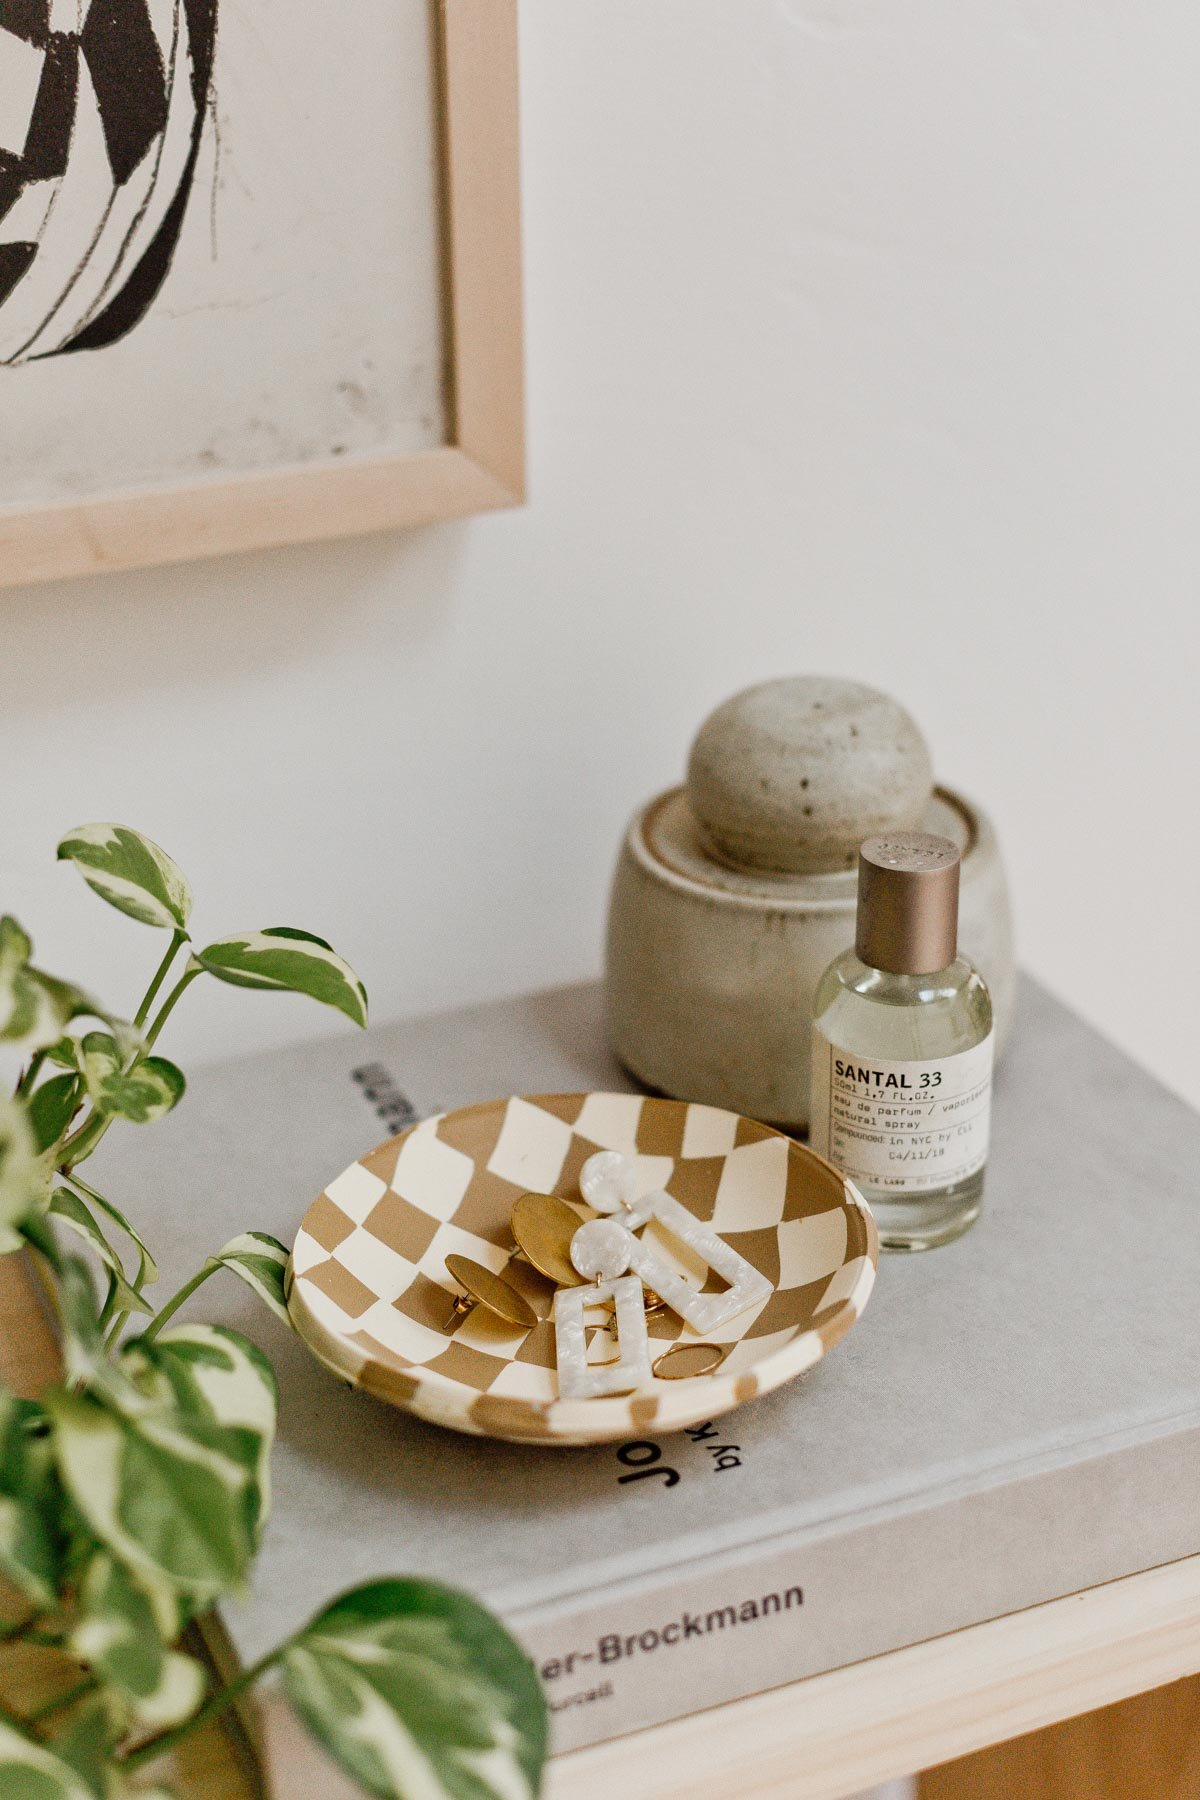 Checkered pattern clay bowl with earrings, resting on modern table.